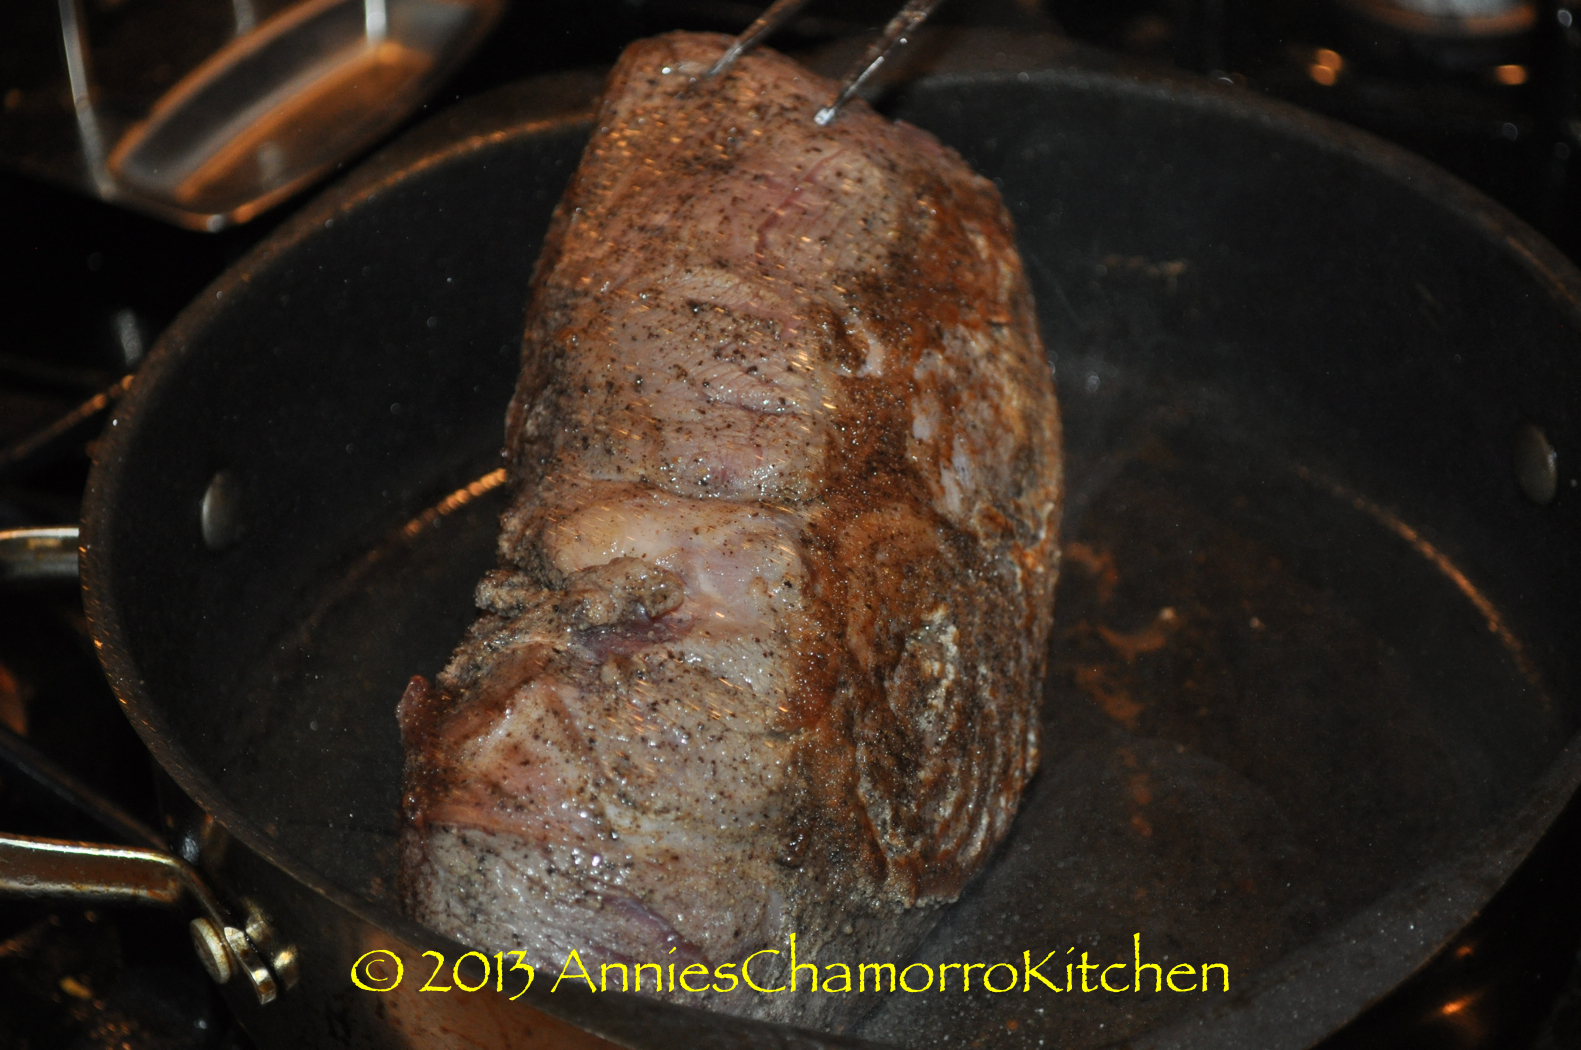 Chamorro Pot Roast - 24